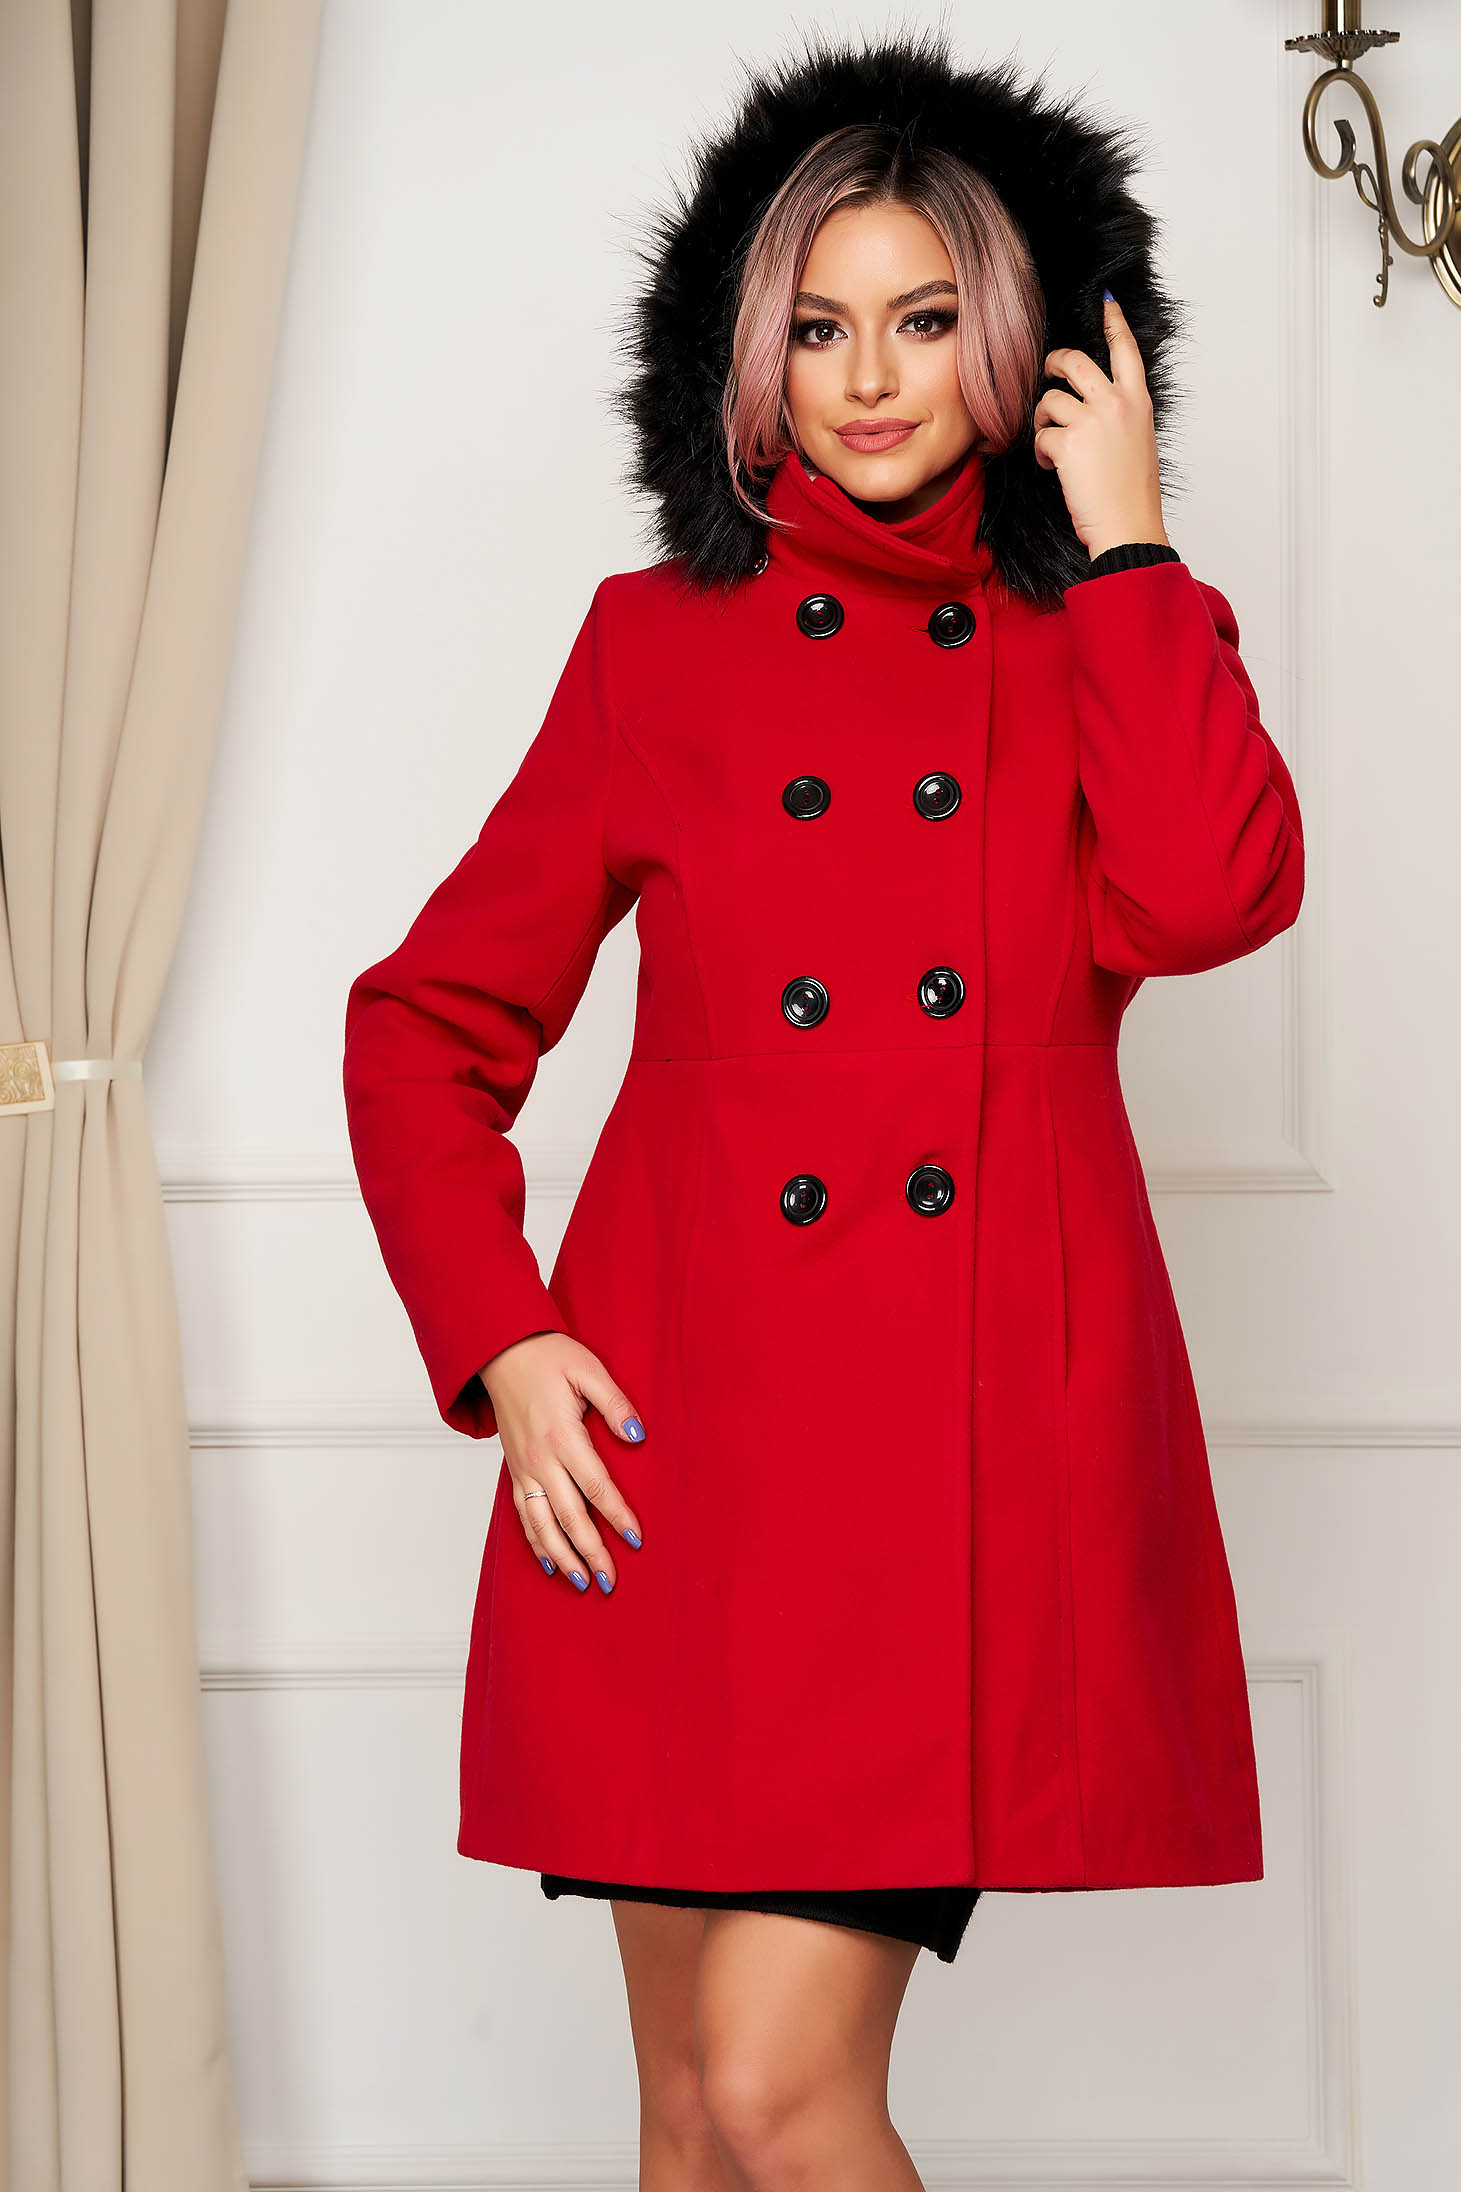 Red coat elegant short cut straight wool the jacket has hood and pockets